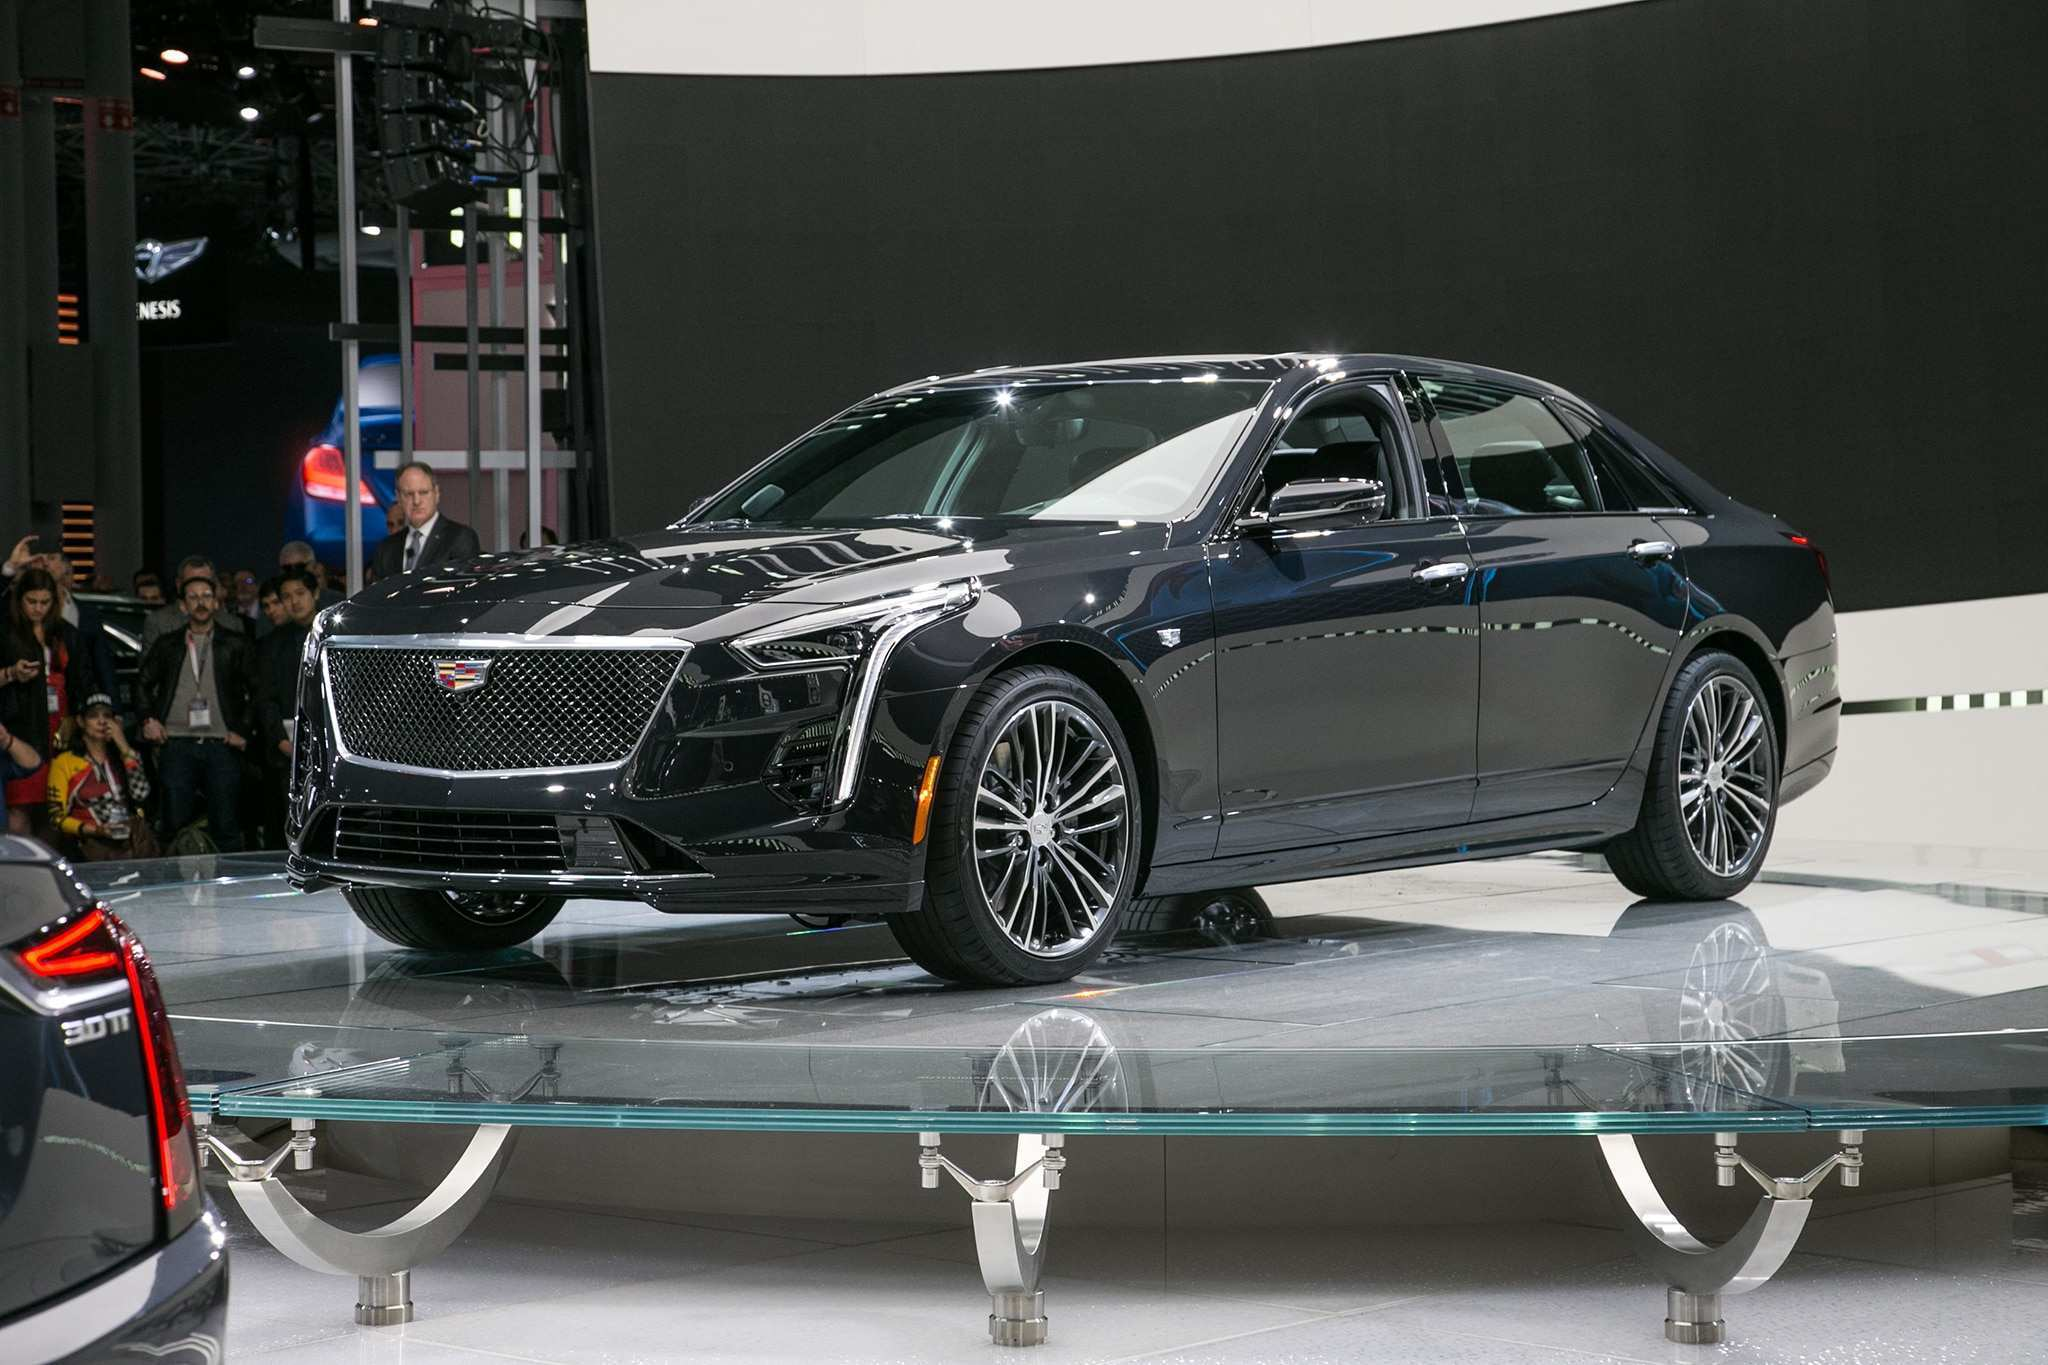 84 Gallery of 2019 Cadillac Ct6 Price and Review for 2019 Cadillac Ct6